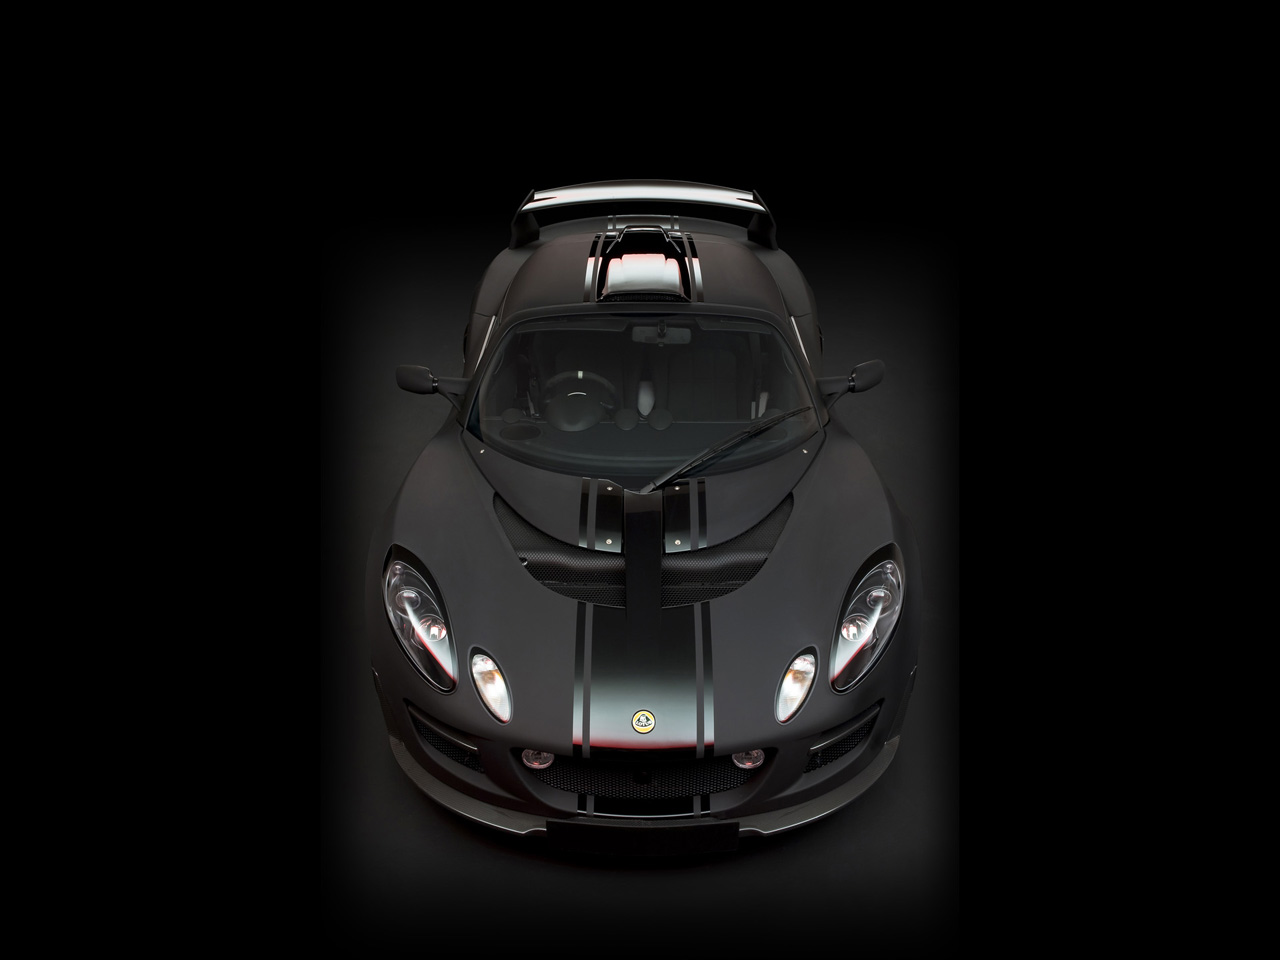 2012 Lotus Lotus Exige Matte Black Final Edition